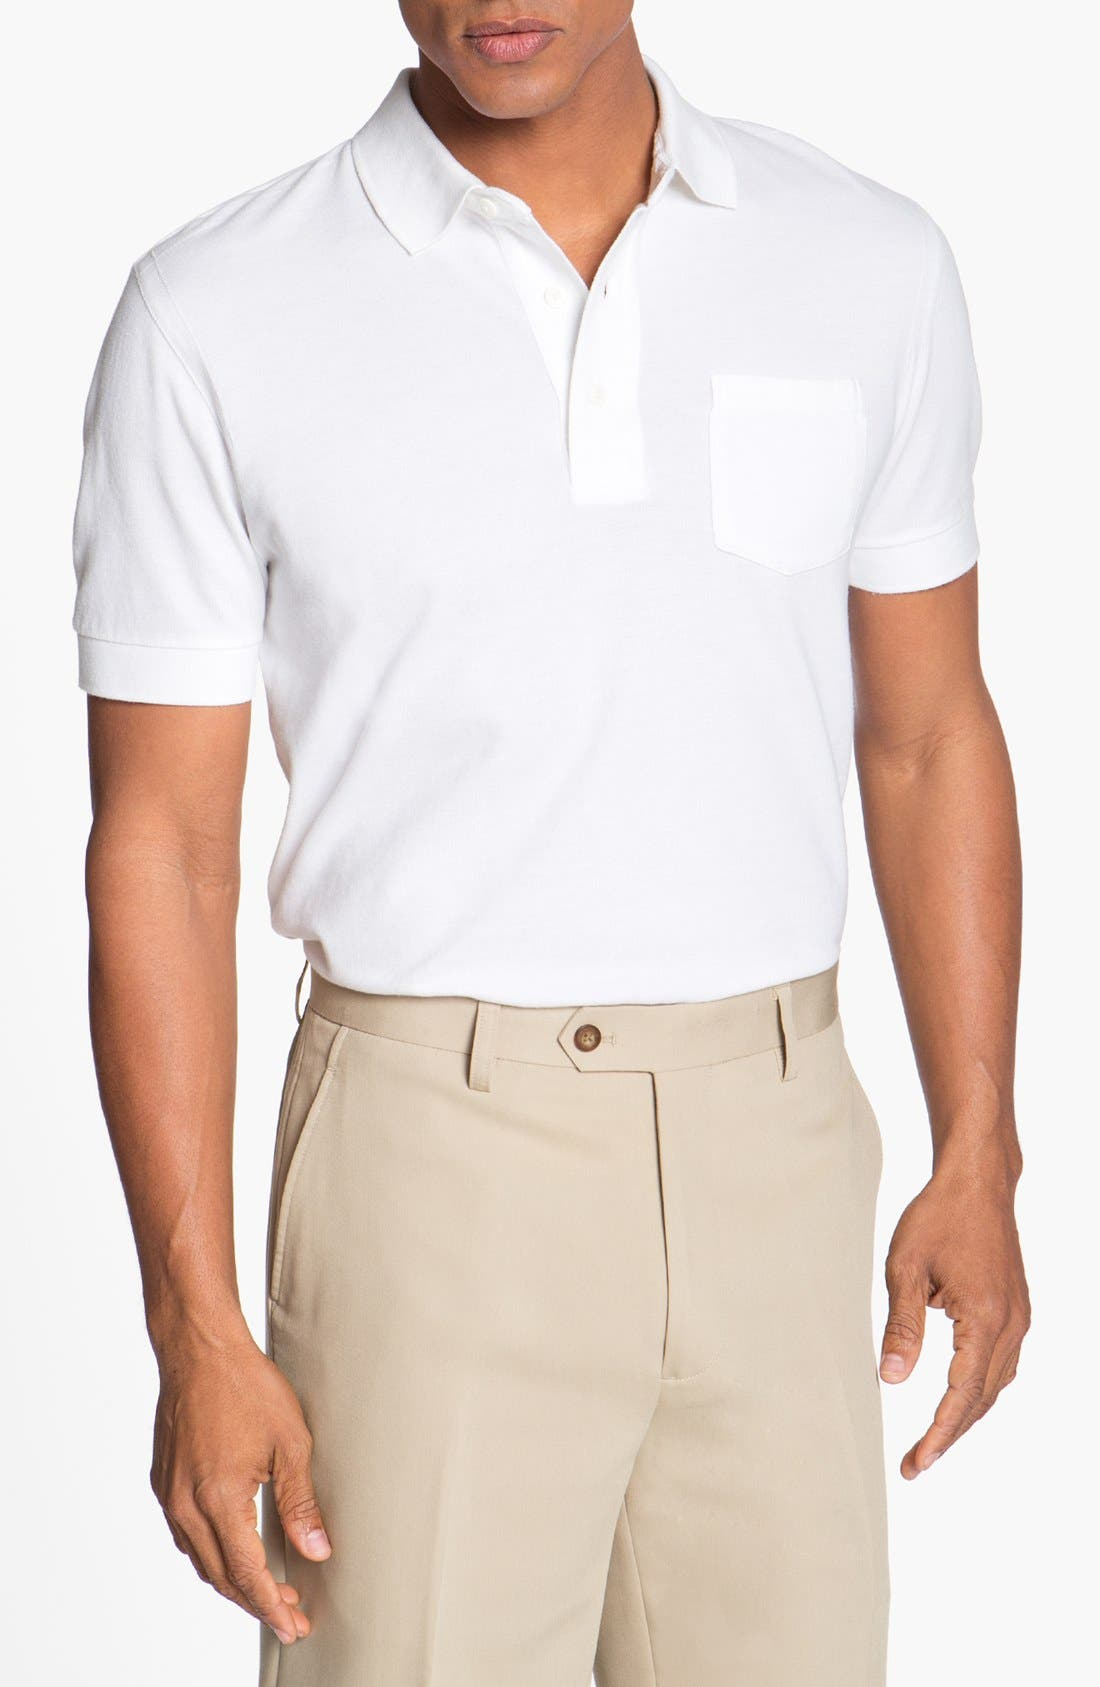 Alternate Image 1 Selected - Cutter & Buck 'Market' Polo (Big & Tall) (Online Only)